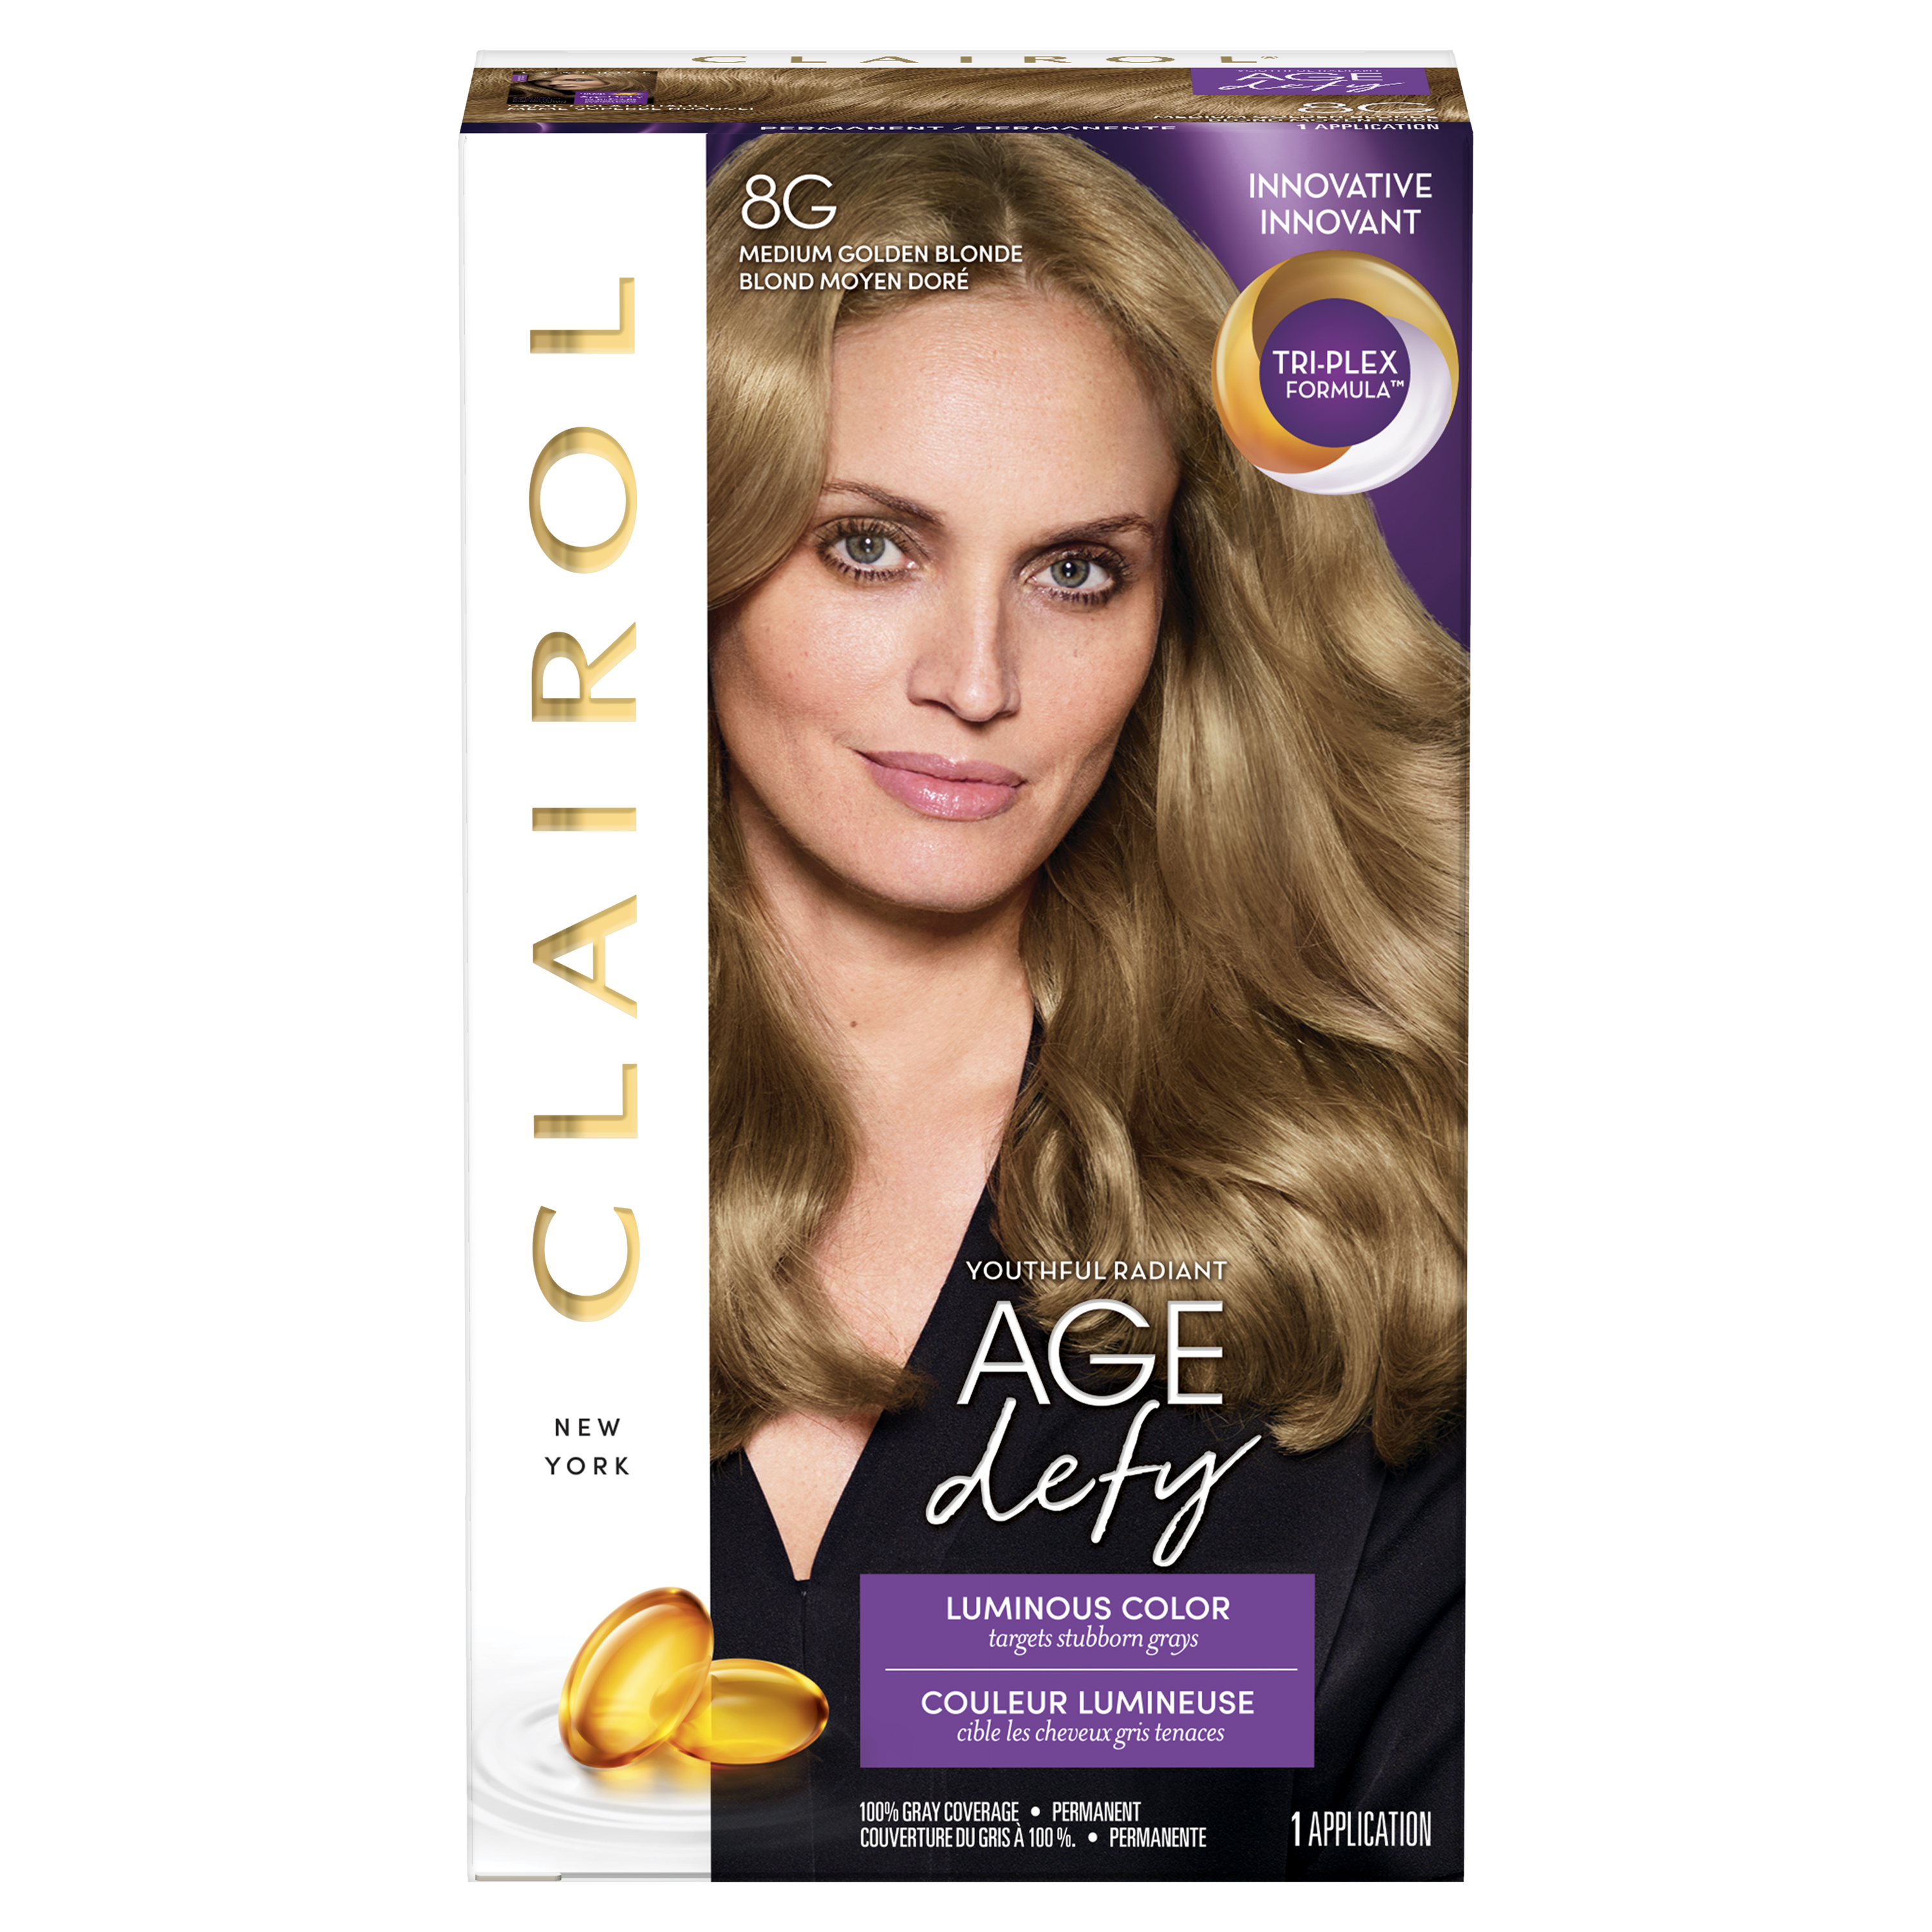 Clairol Age Defy Expert Collection Hair Color, 8G Medium Golden Blonde